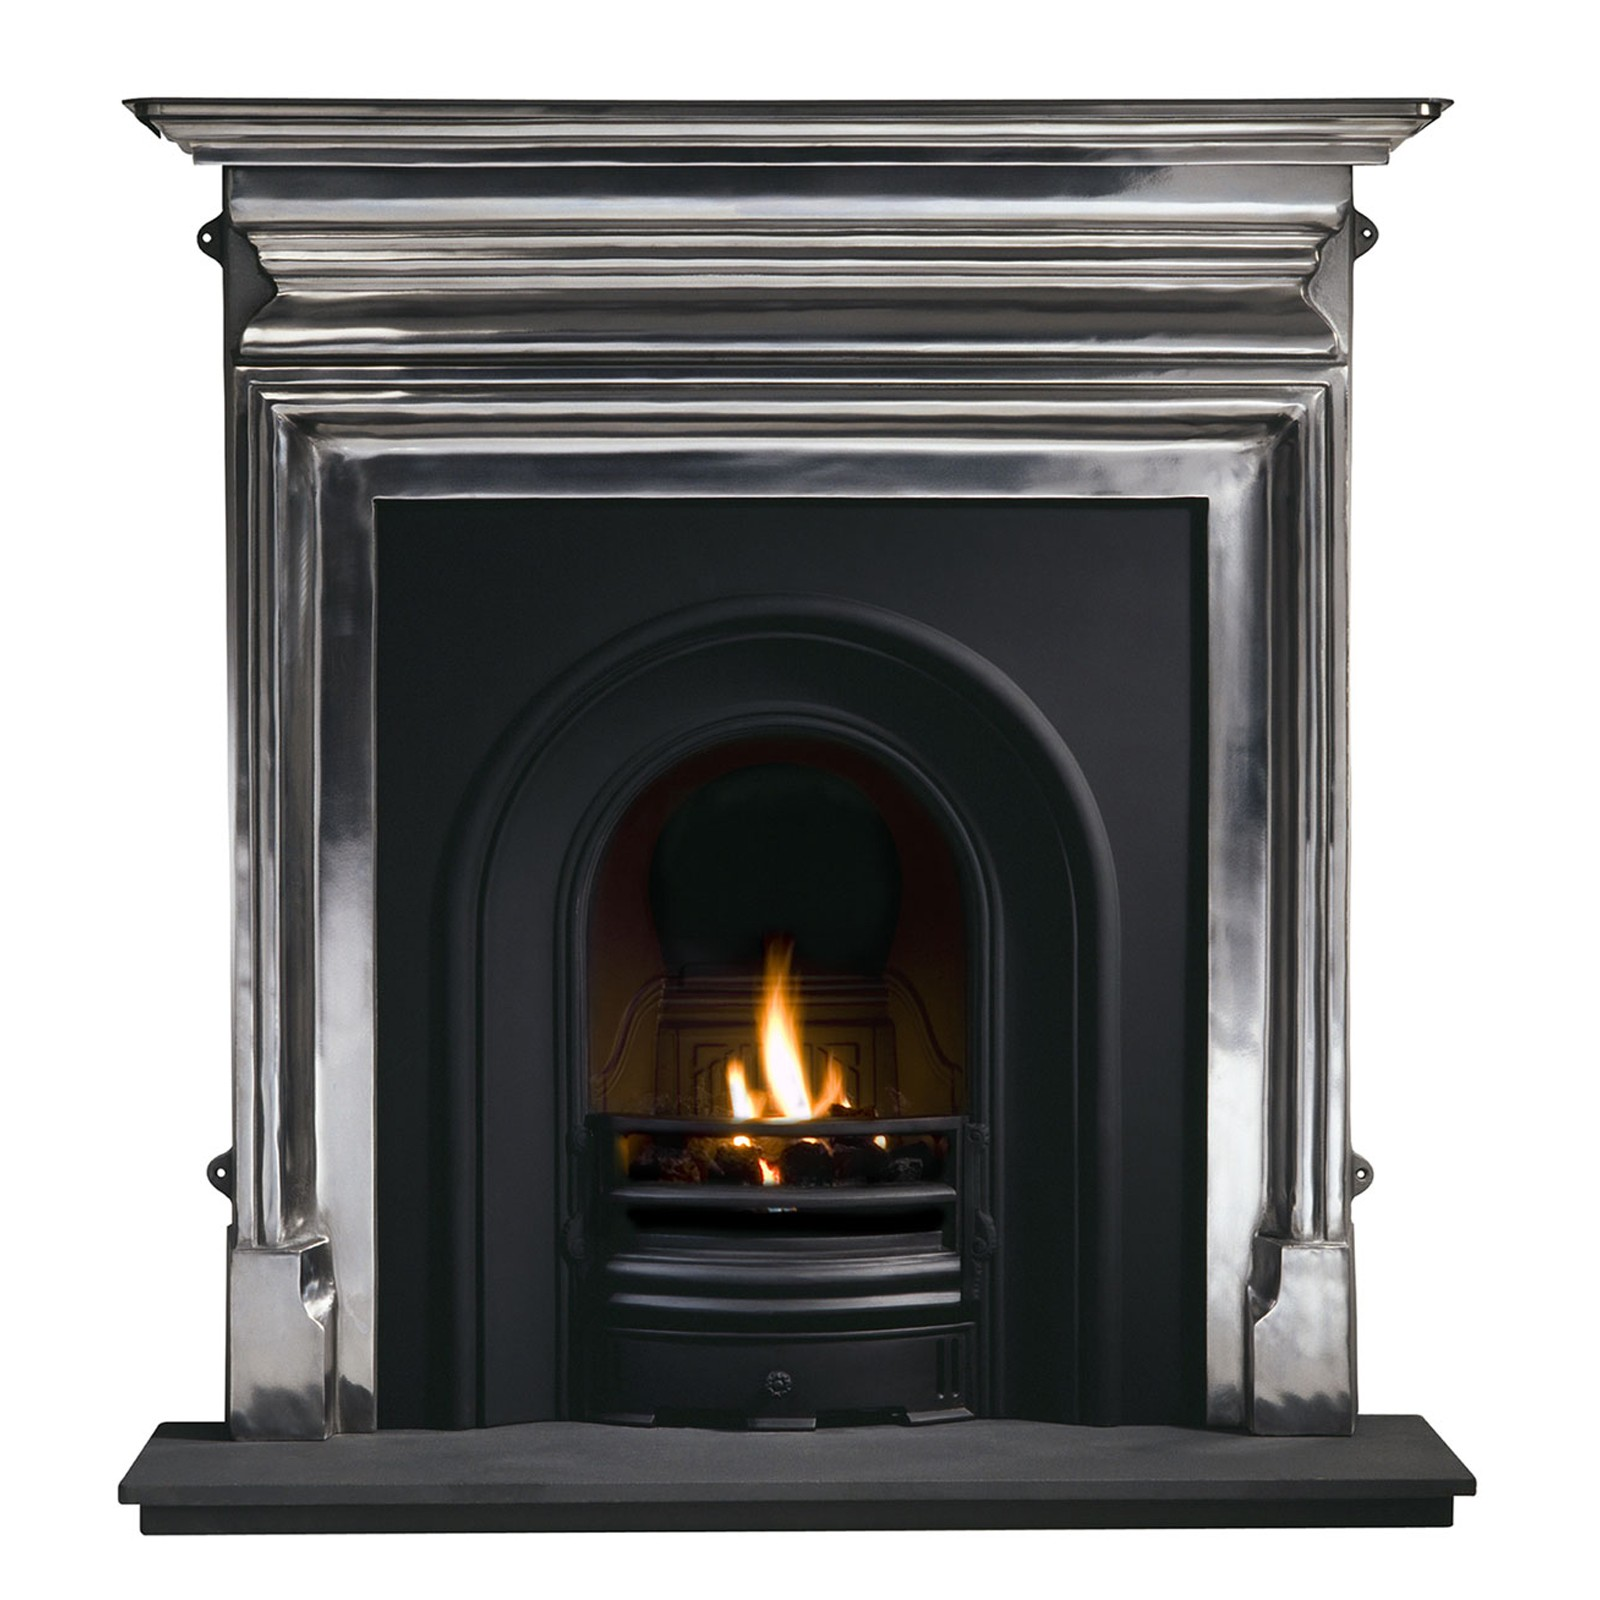 Come see our amazing deals at fireplaces 4 life we are offering top products at incredibly low prices. Call us on 01274 871010 for more information